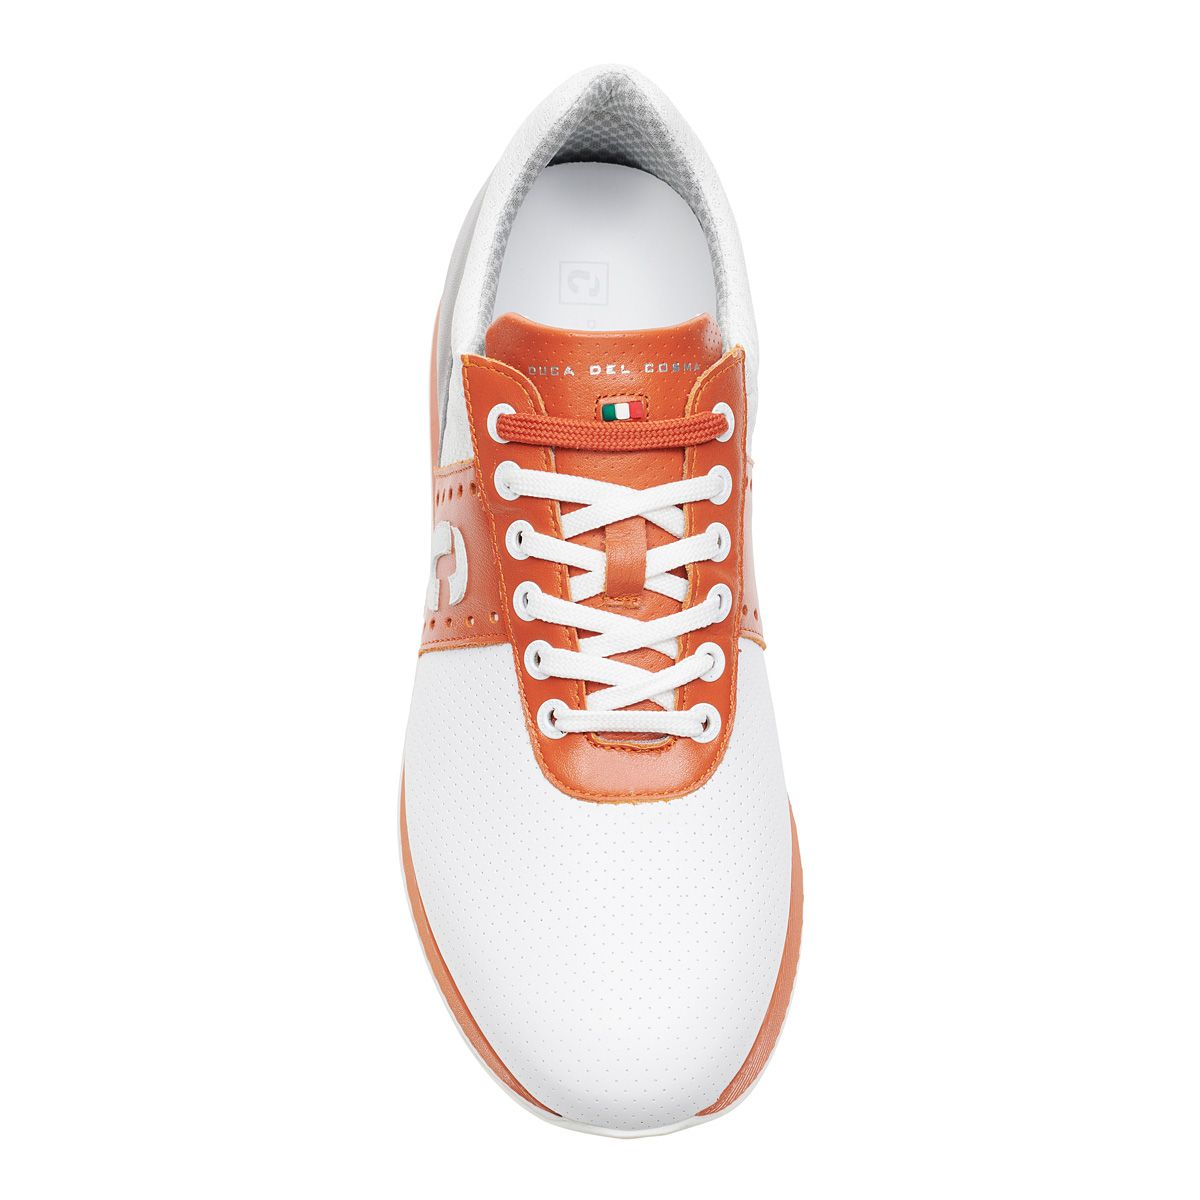 Men's Belair White / Orange / Light Grey Golf Shoe